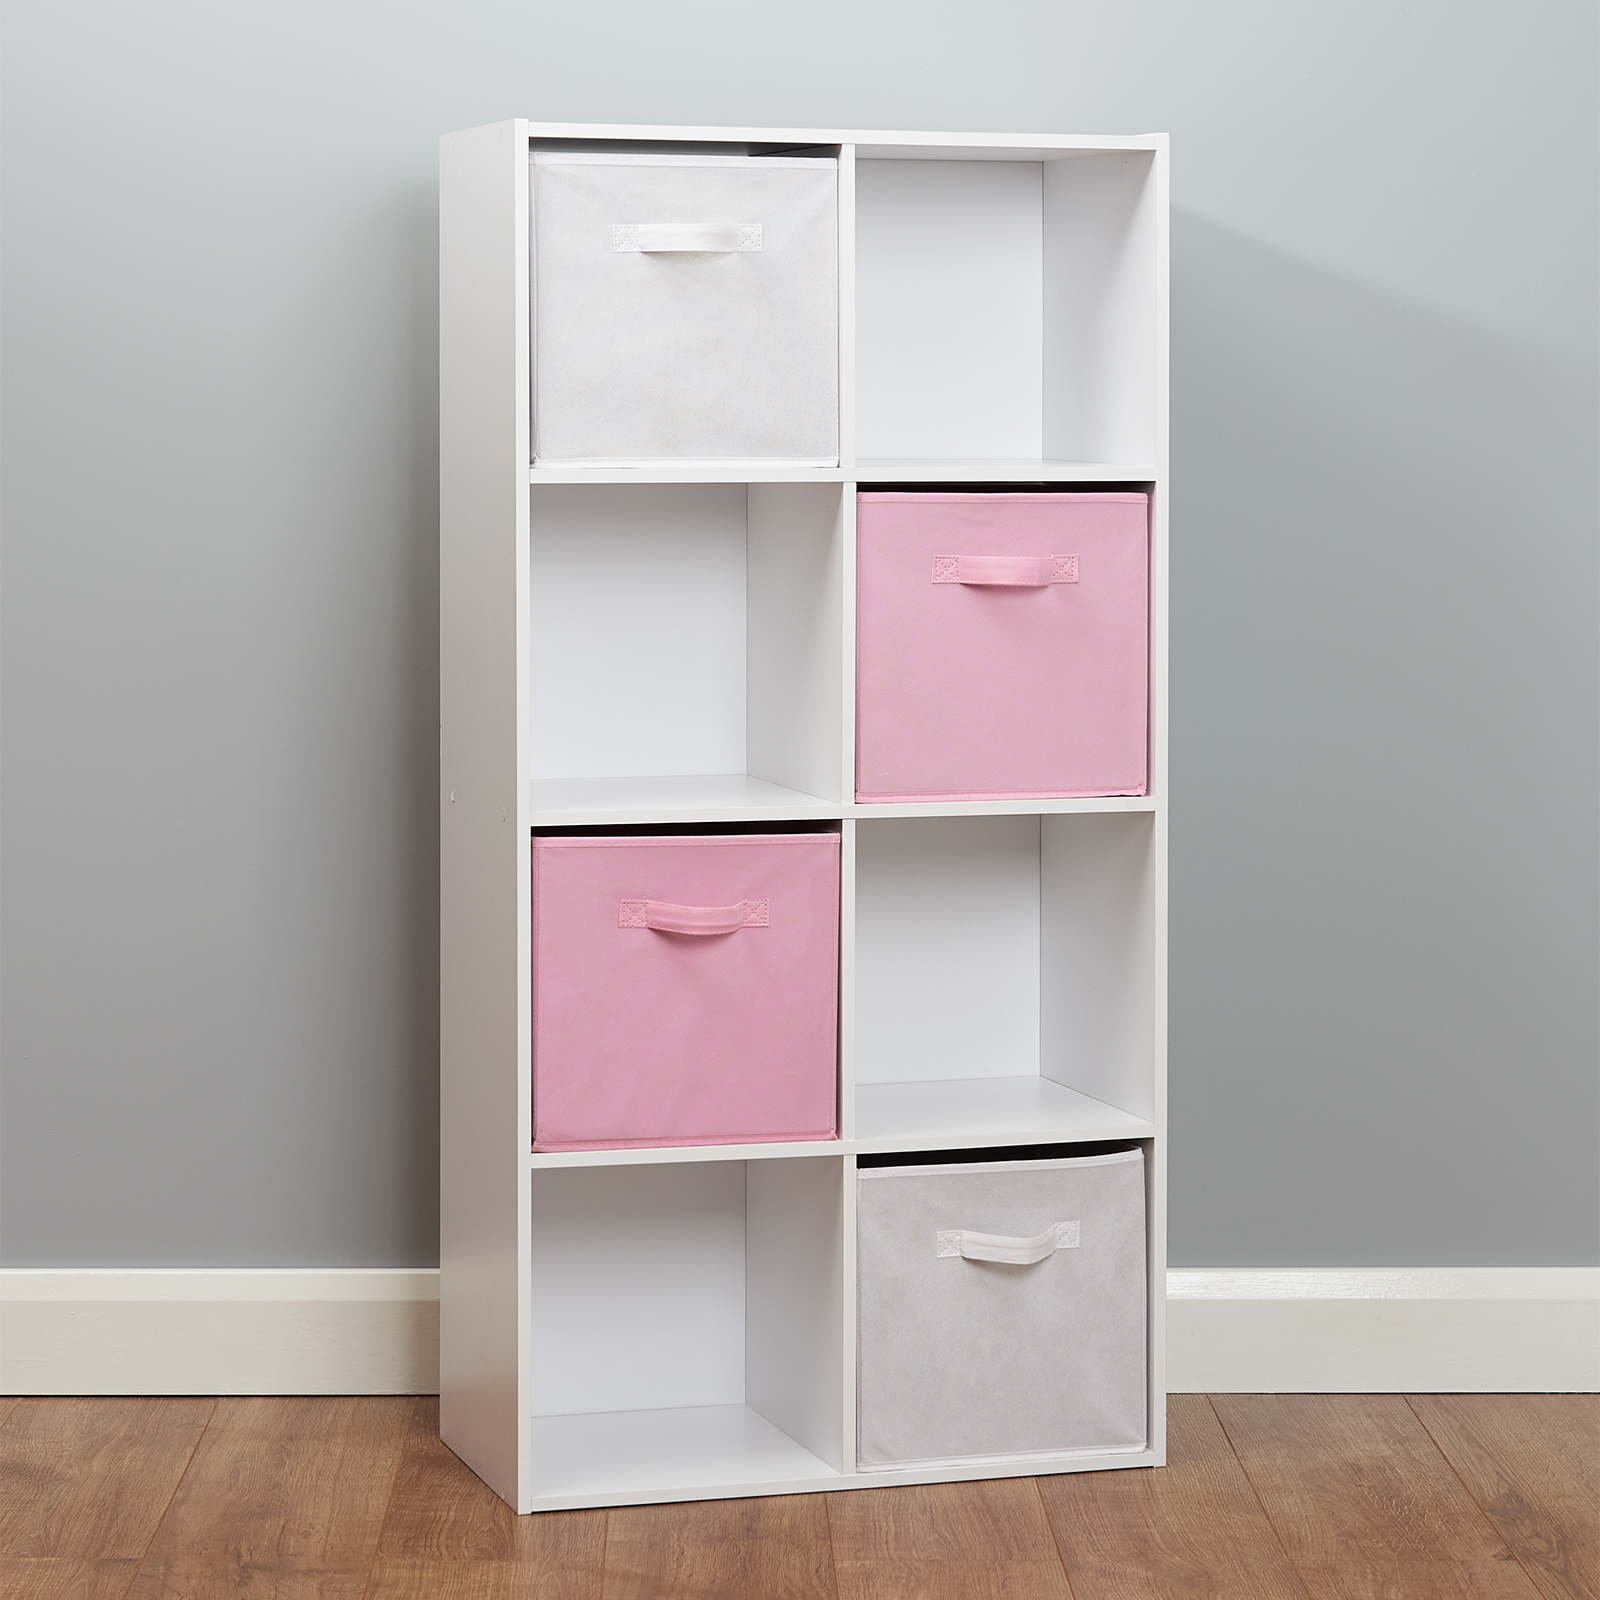 Black 6 Cube Kids Toy Games Storage Unit Girls Boys: 8 Cube Storage Unit White/Pink Boxes Childrens/Kids